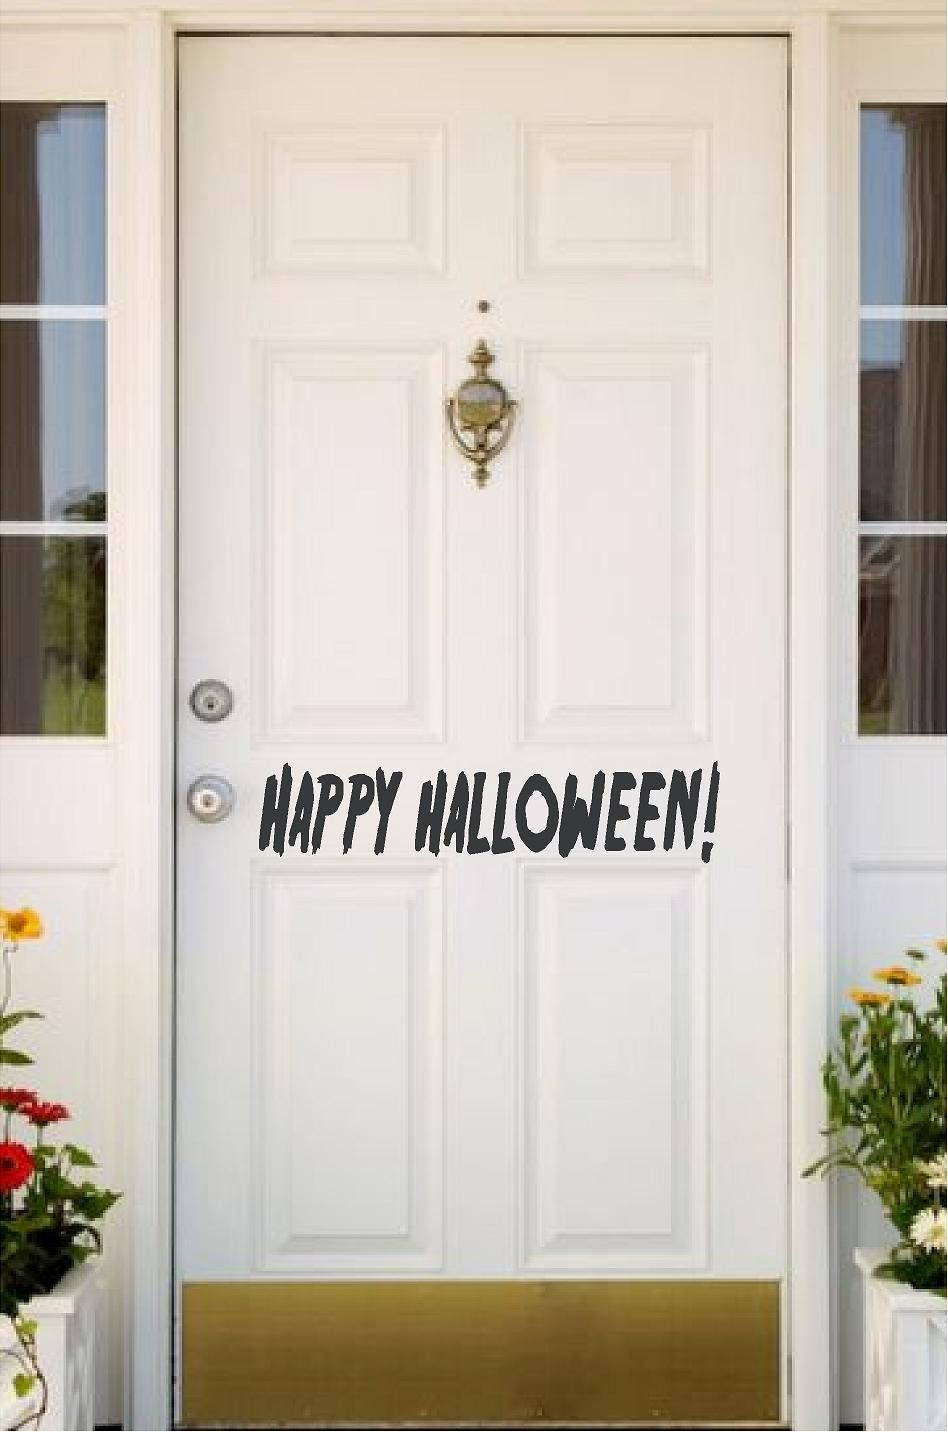 Happy halloween door decal halloween wall decal holiday decal halloween decal halloween decoration